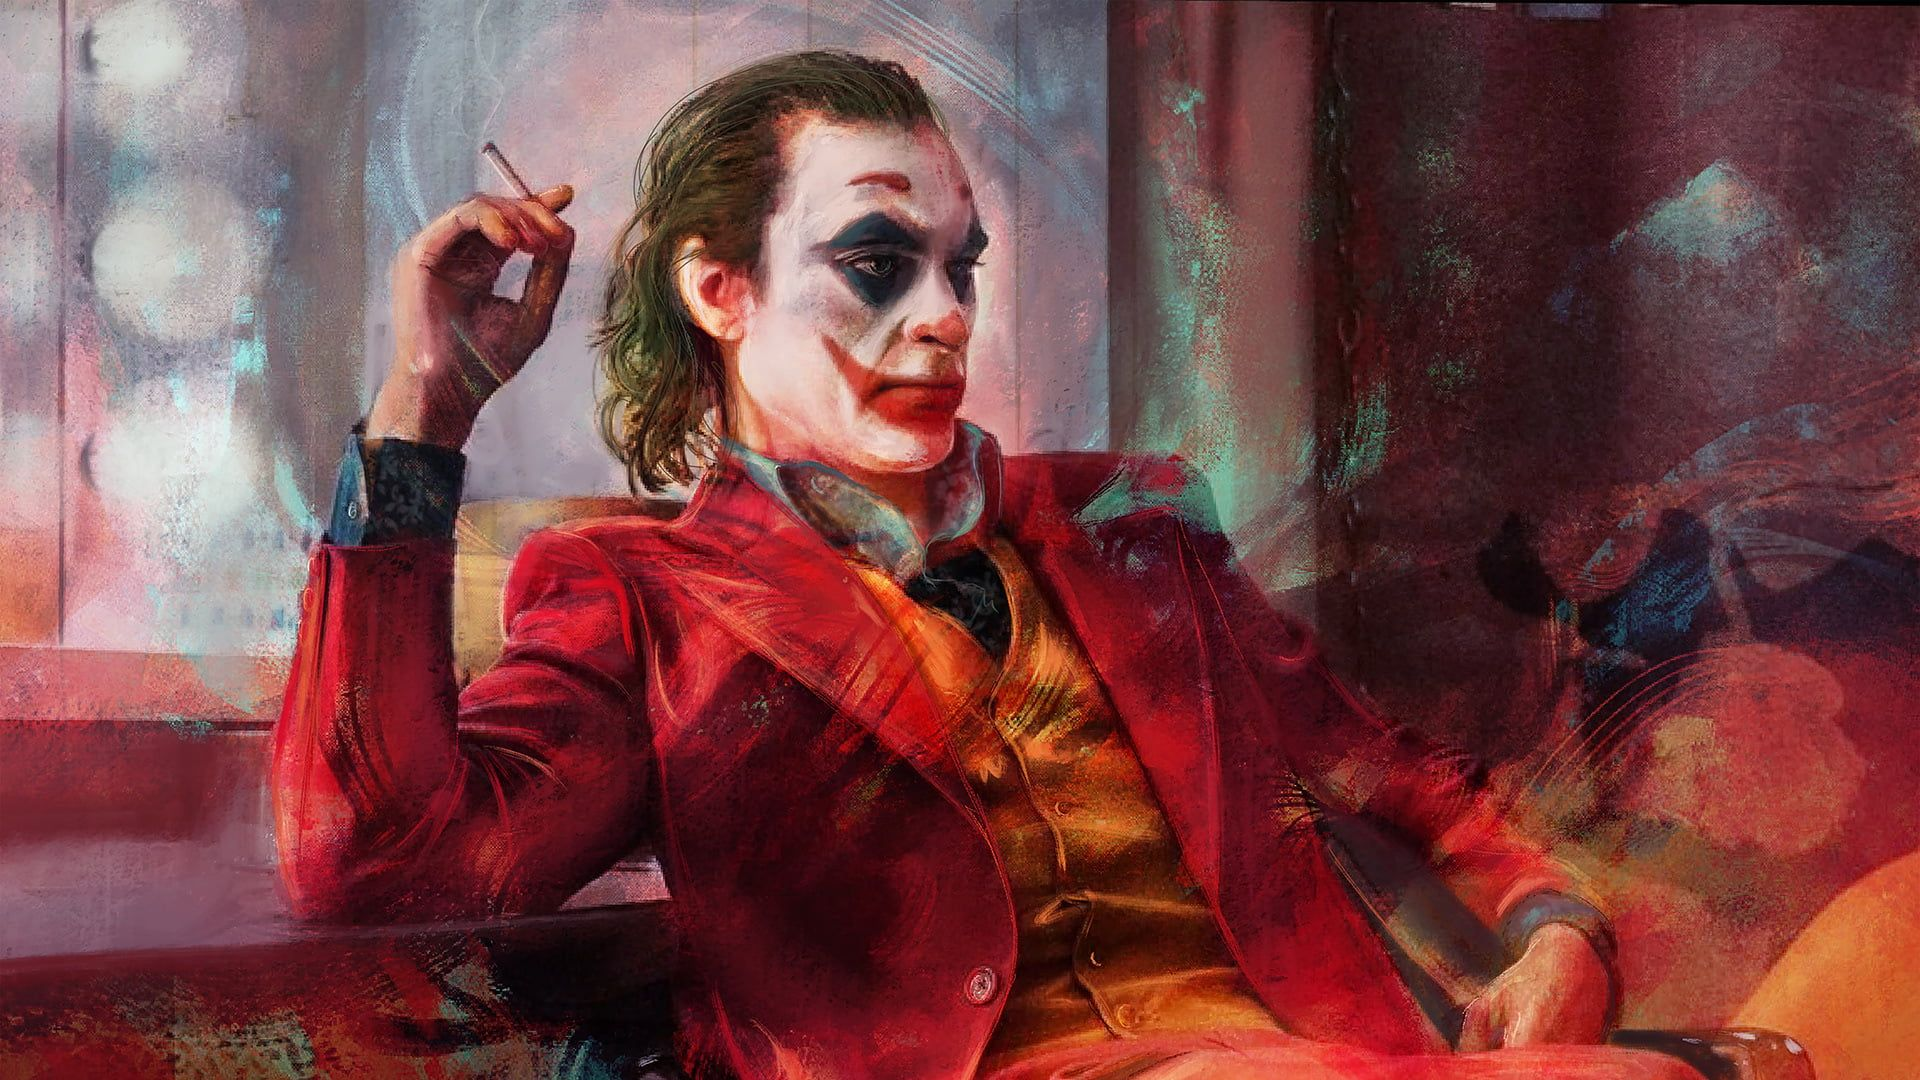 Joker 2019 Movie Joker Joaquin Phoenix Dc Comics Movies 1080p Wallpaper Hdwallpaper Desktop In 2020 Joker Wallpapers Send In The Clowns Joaquin Phoenix